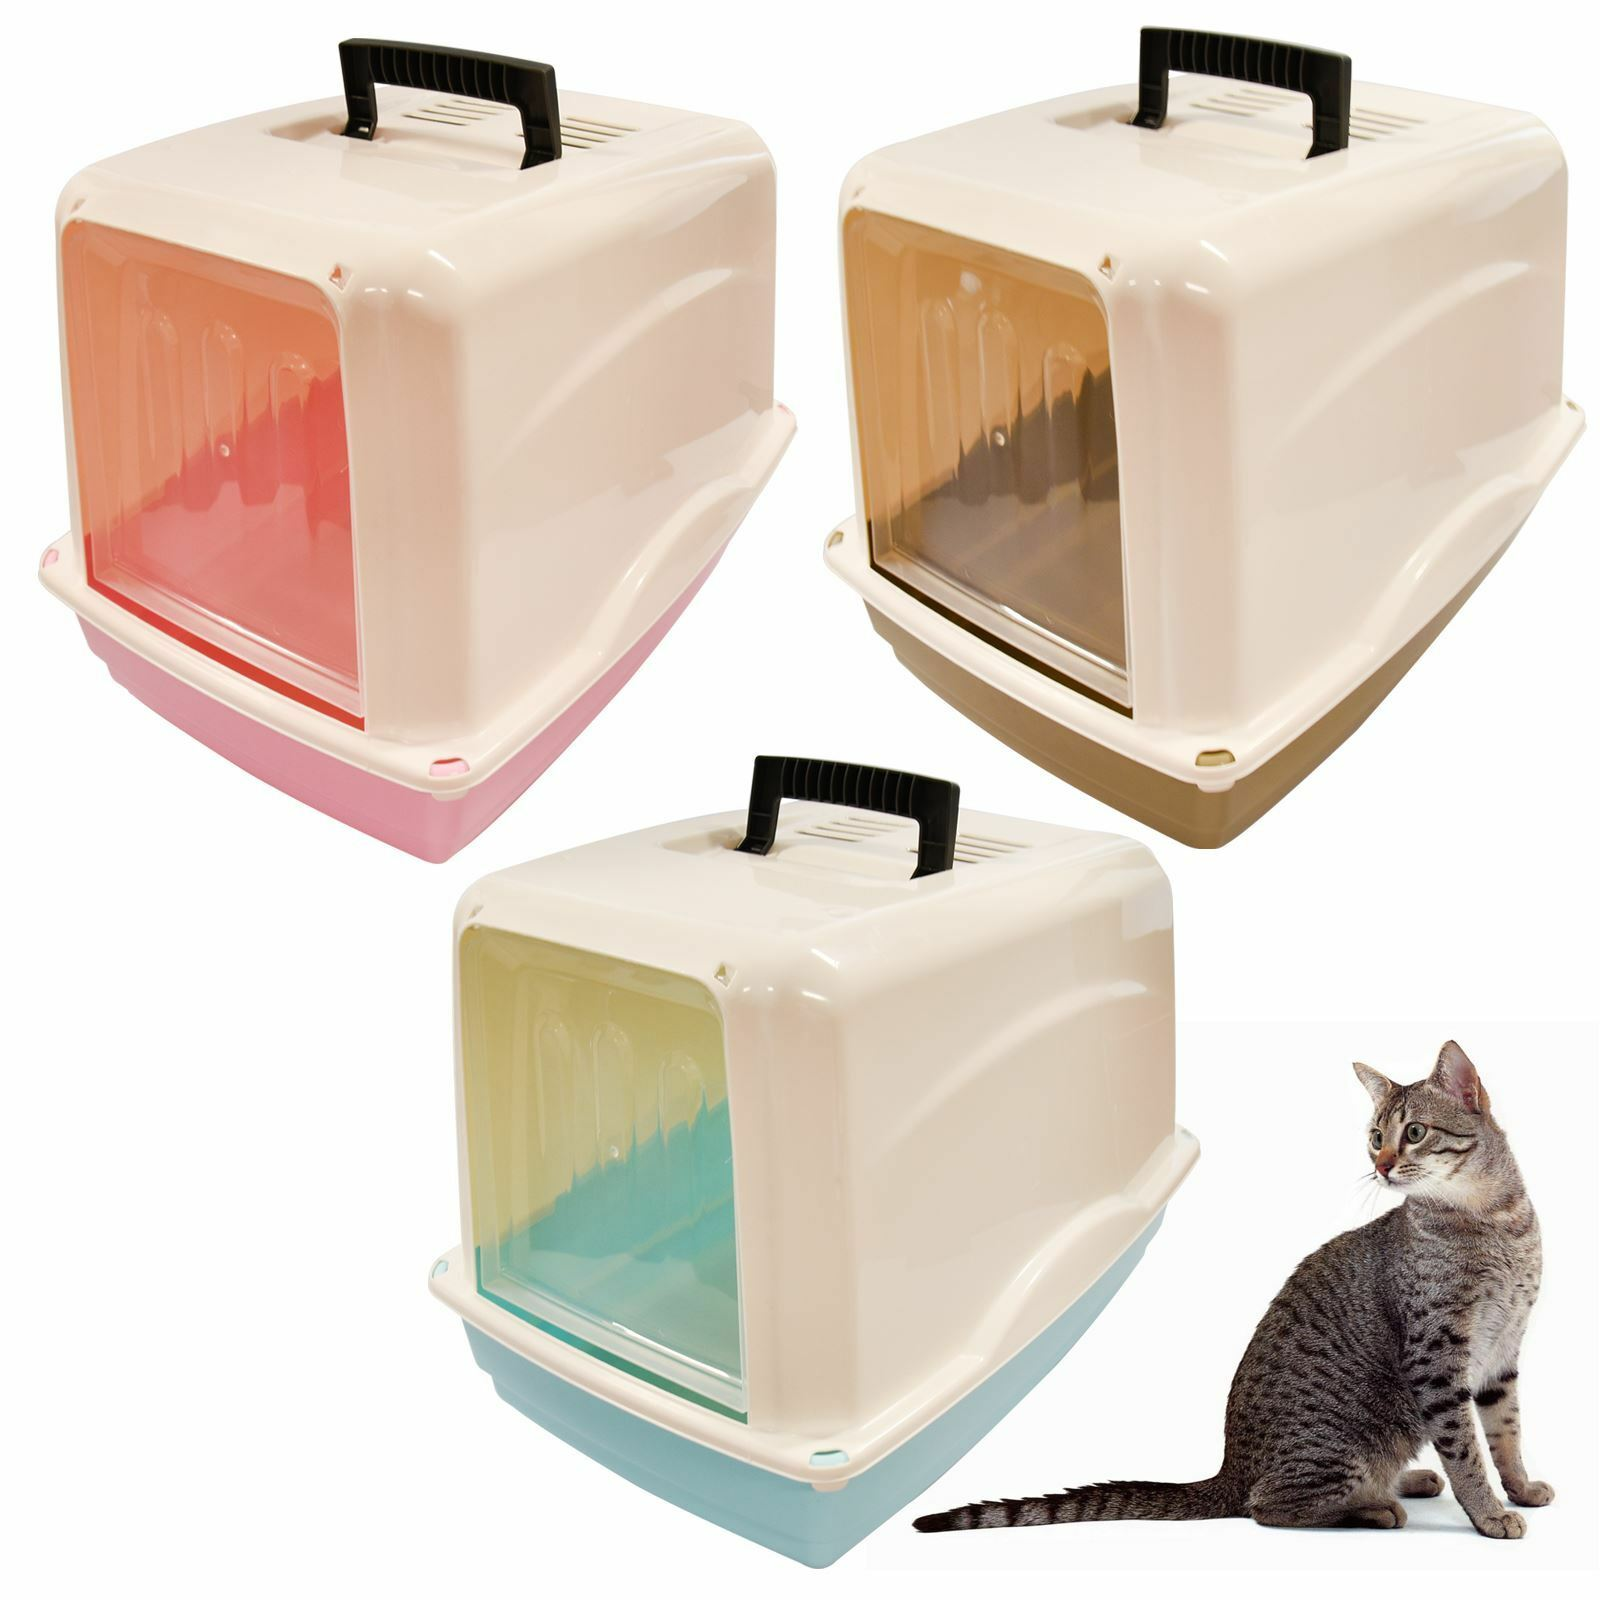 Pet Cat Hooded Litter Box Tray Toilet Swing Door Carry Handle Large Portable